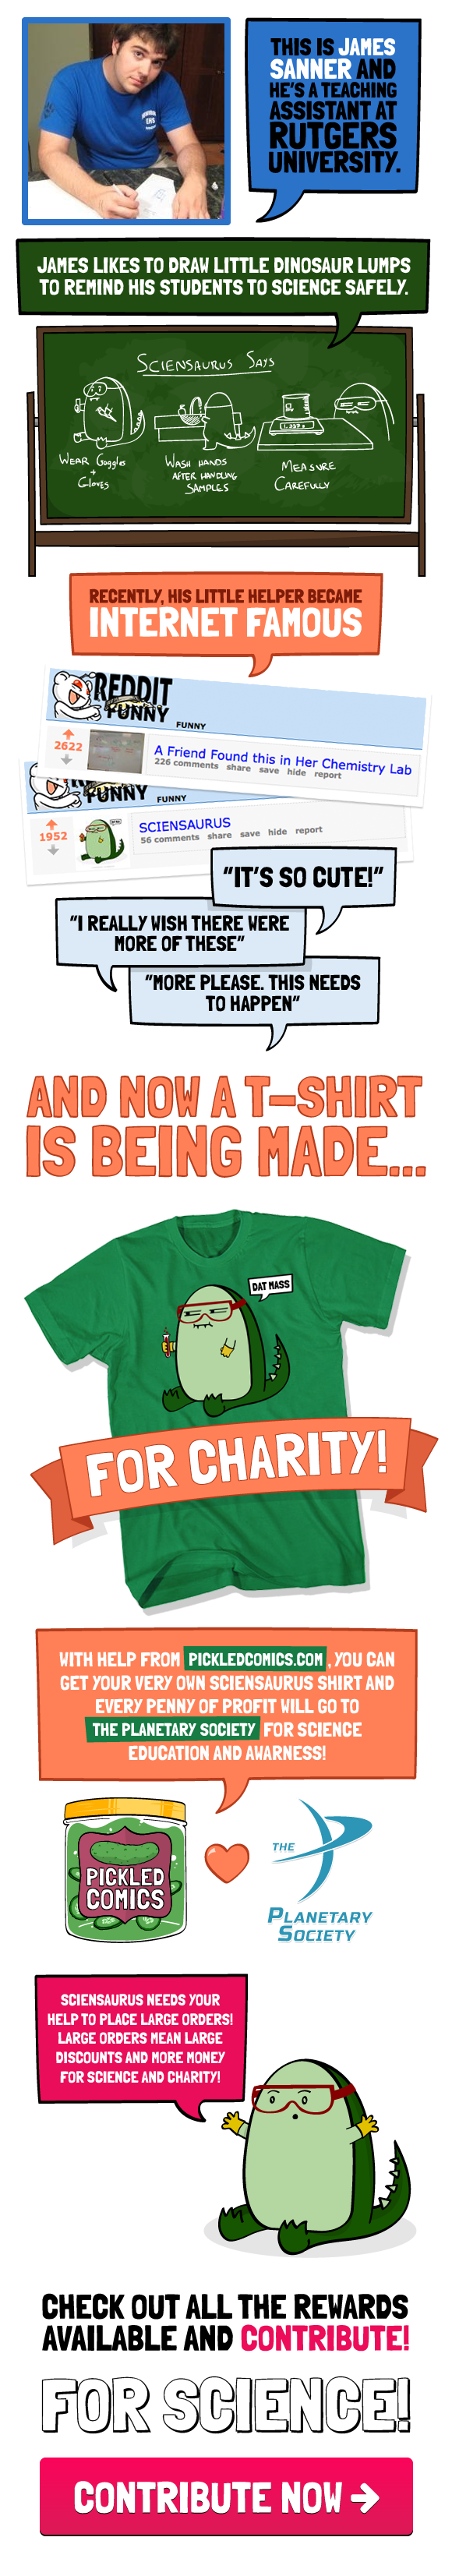 Sciensaurus raised money for The Planetary Society with a shirt on indiegogo.